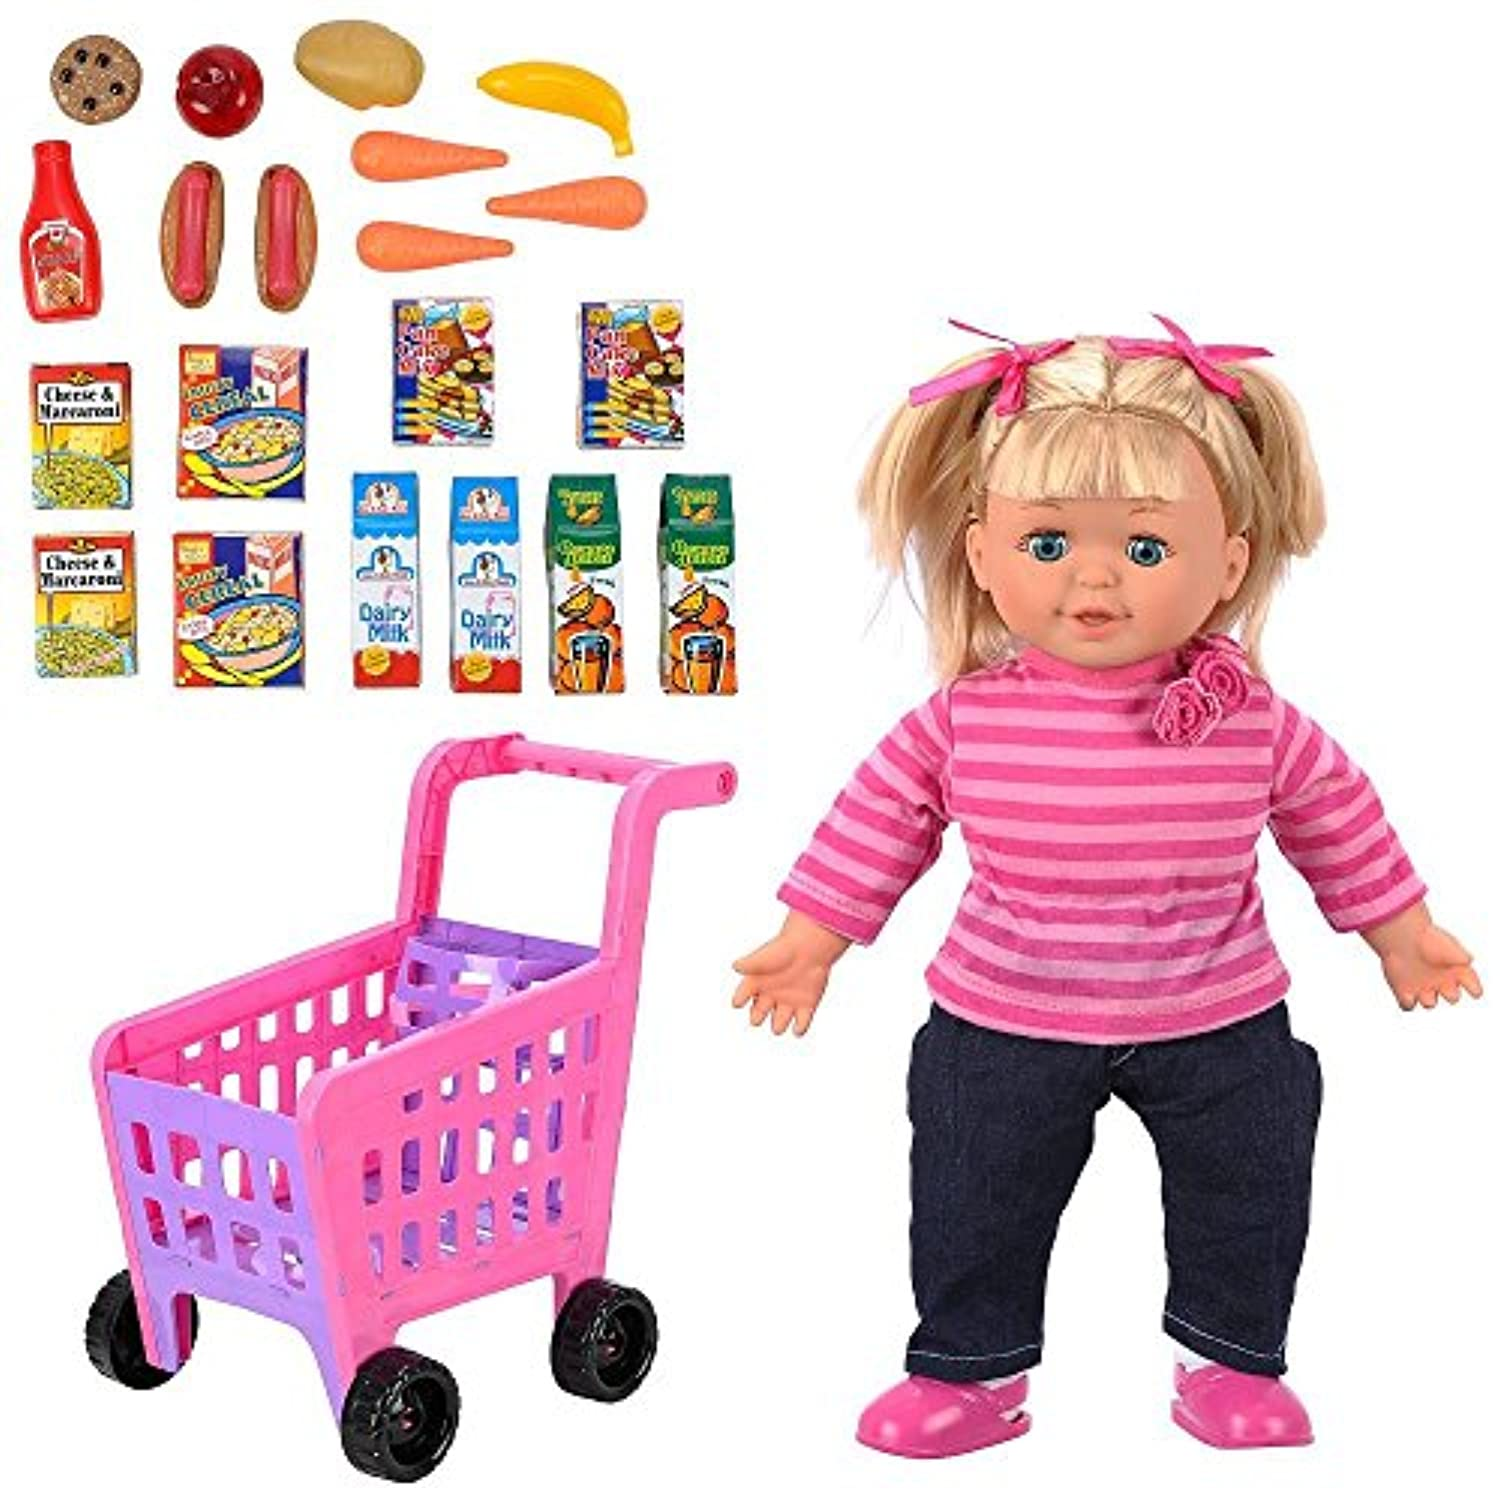 You & Me 14 inch Doll and Shopping Cart Set [並行輸入品]